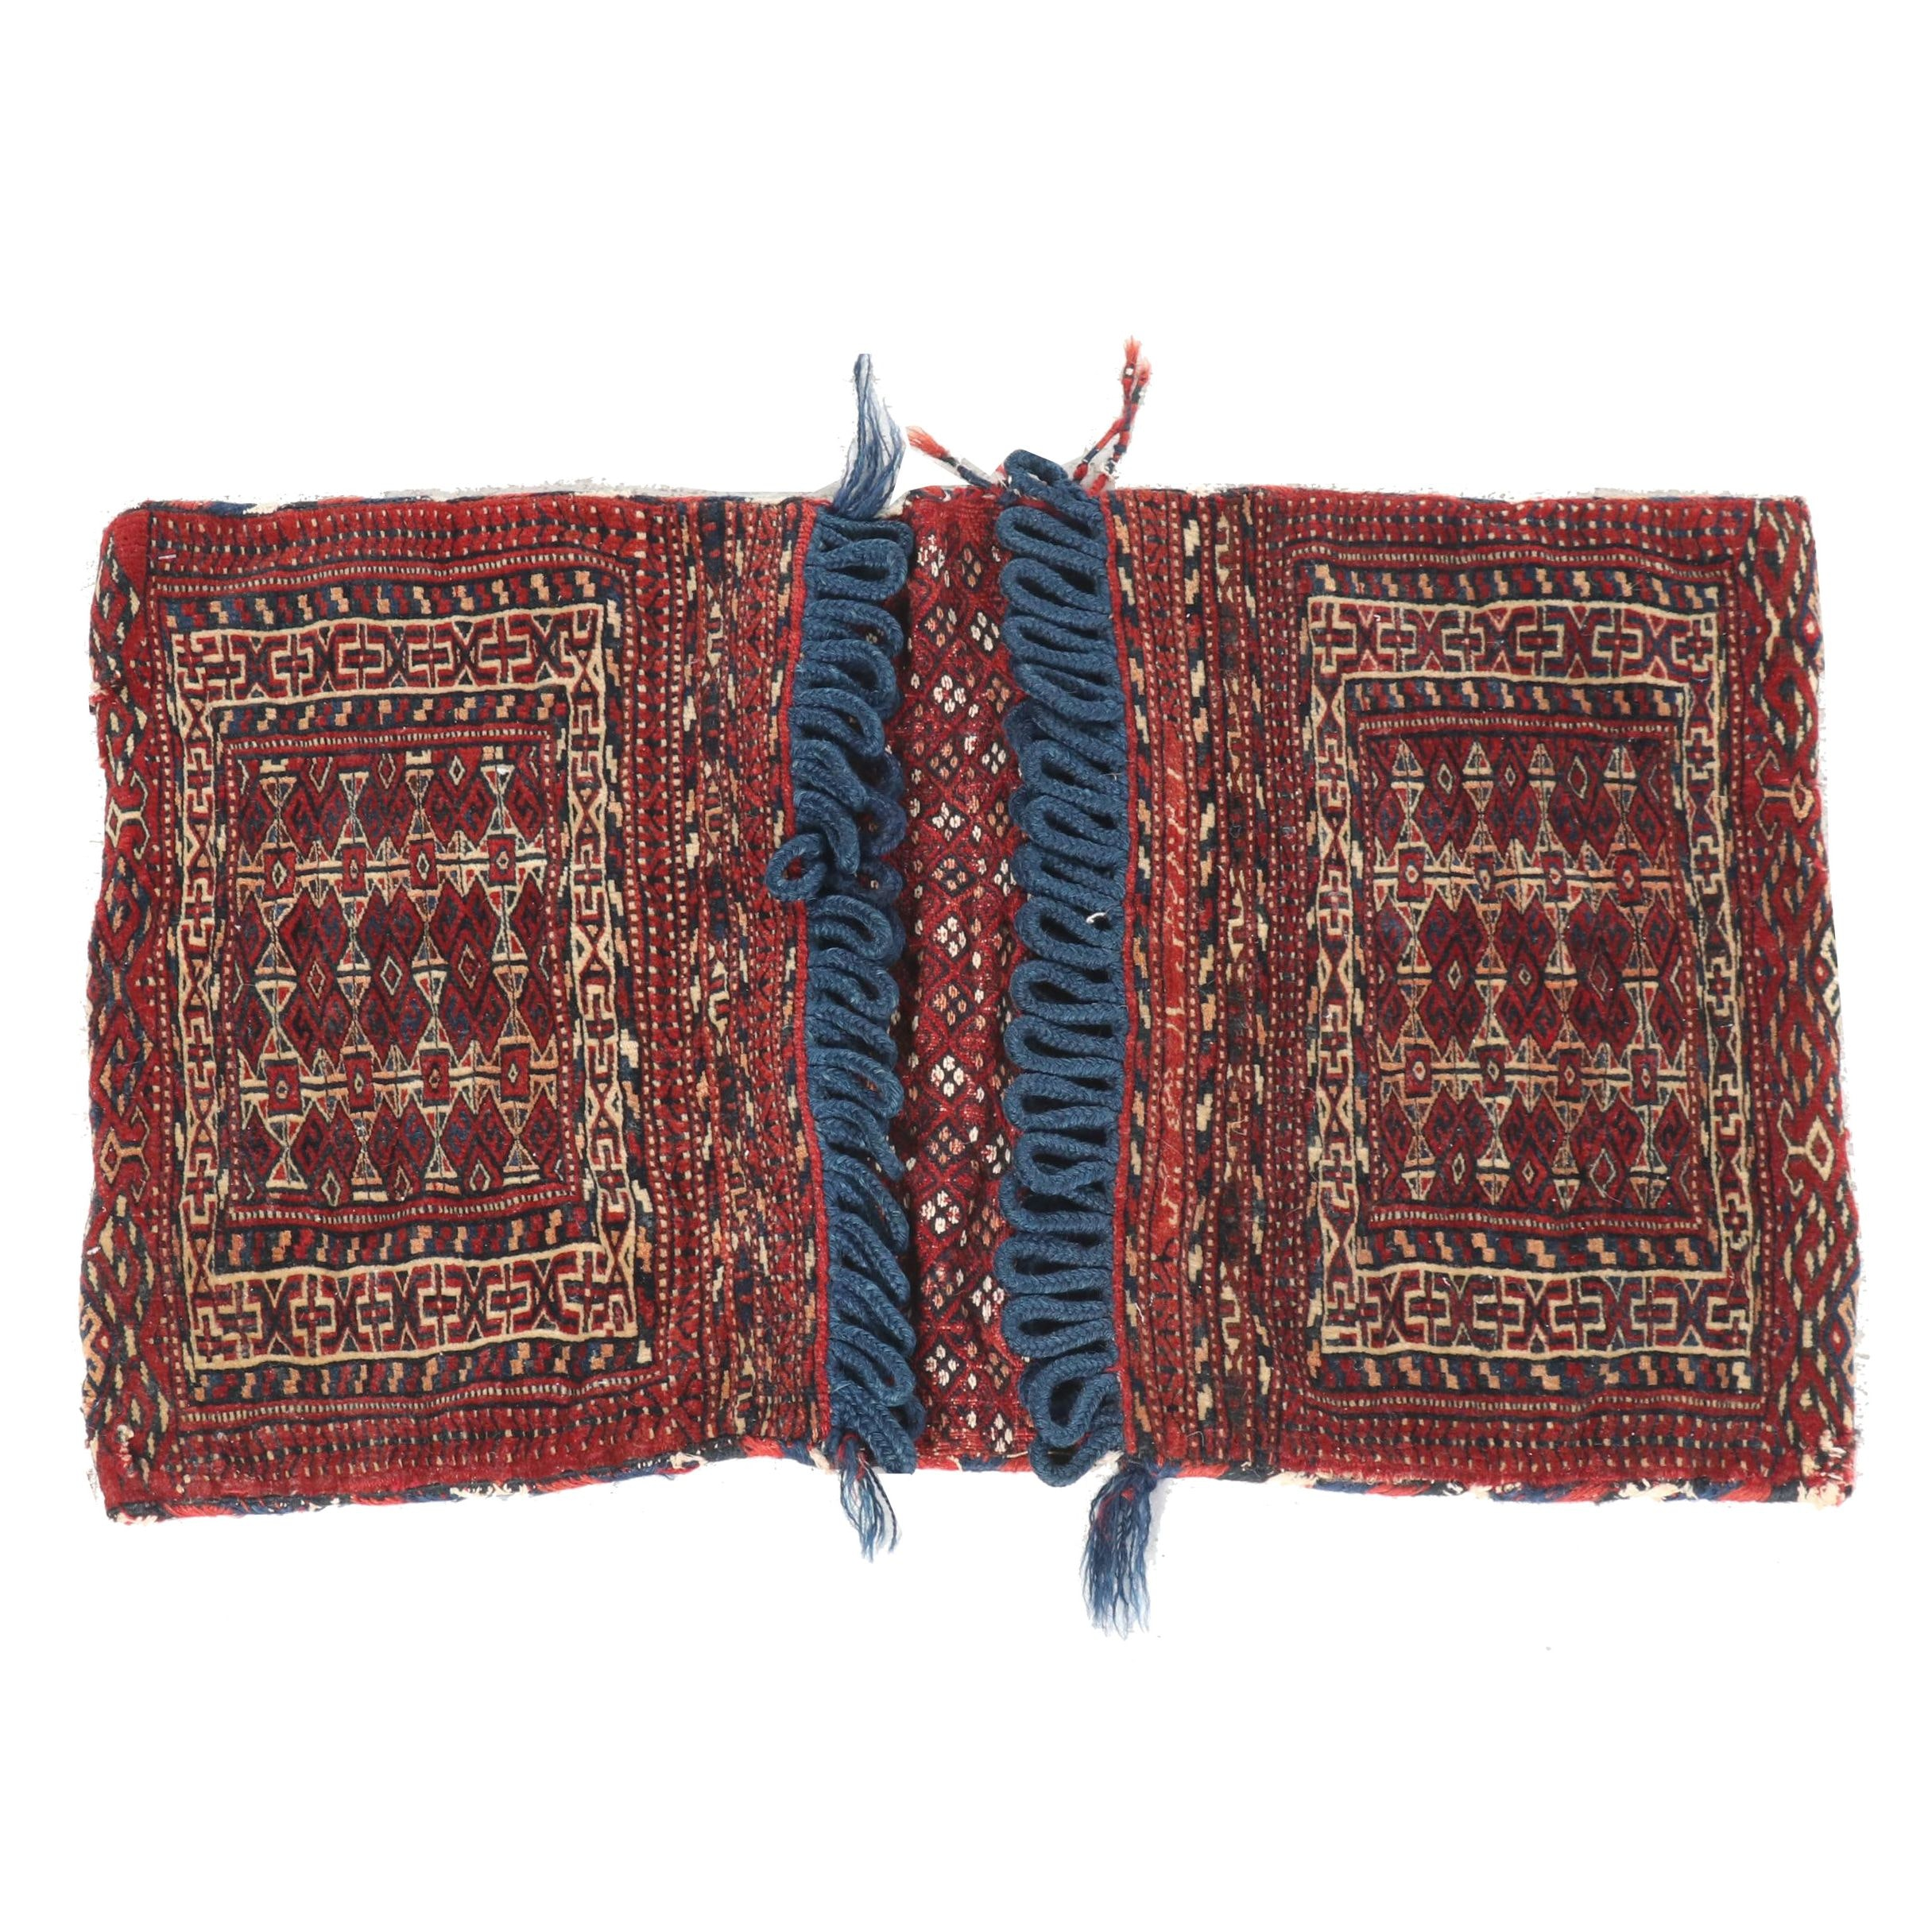 Hand-Knotted Persian Wool Saddle Bag